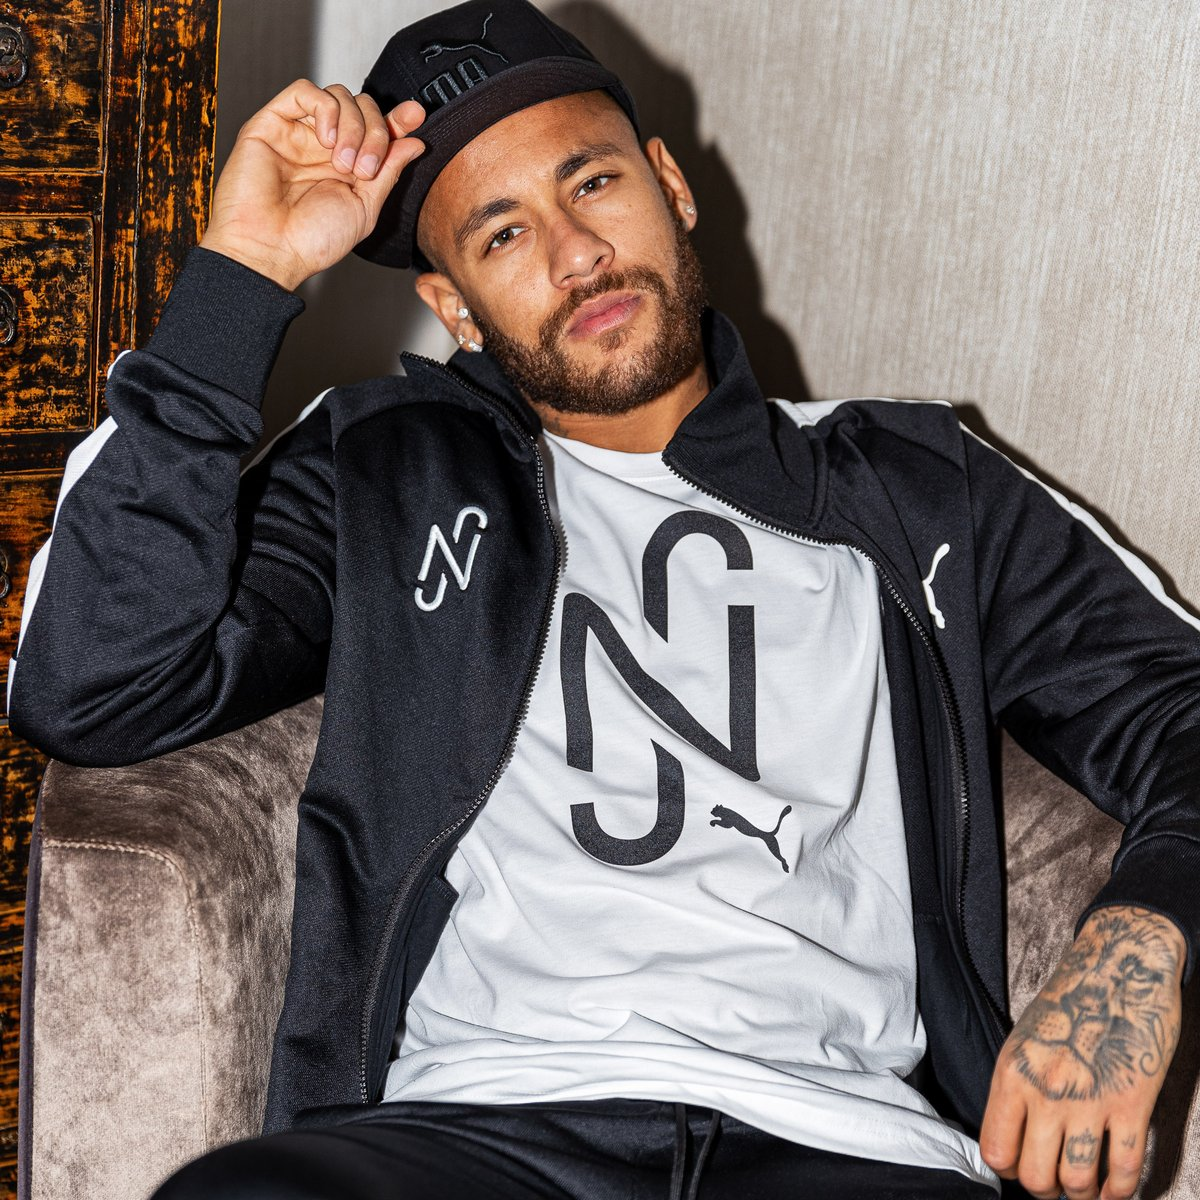 Welcome to the fam @neymarjr #KingIsBack https://t.co/zC6vfImUzZ